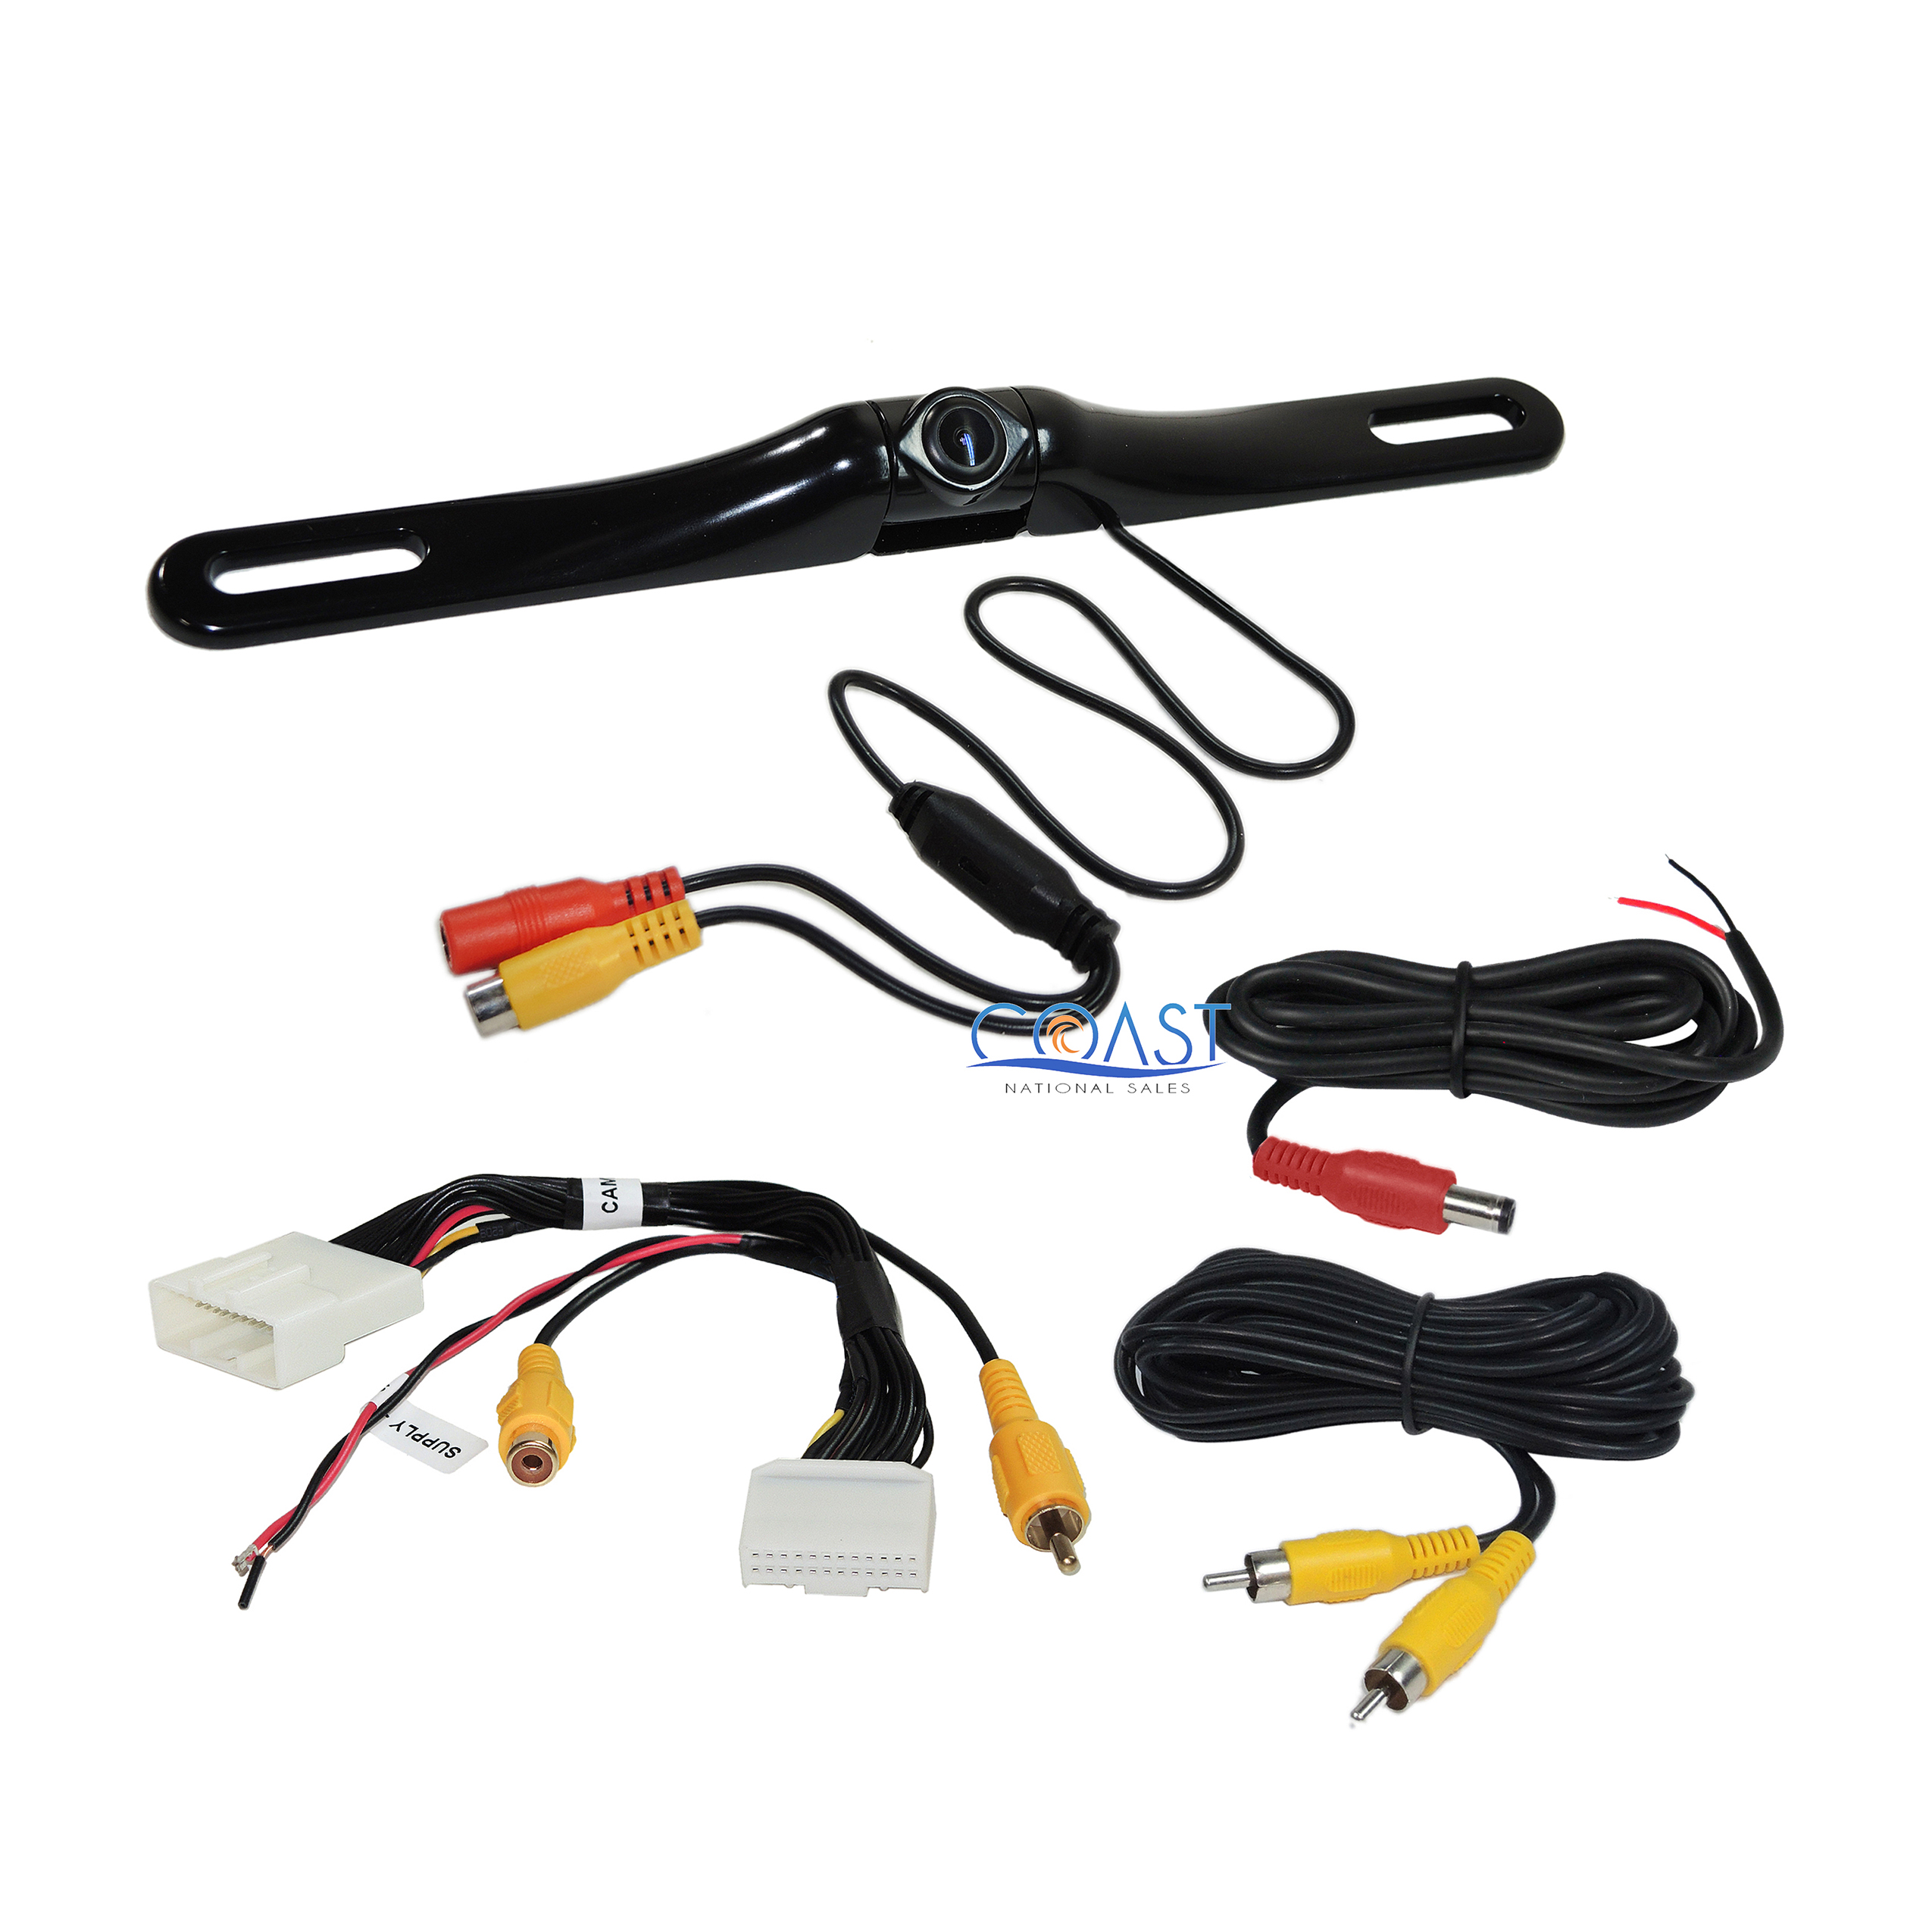 Reverse Trigger Wire For Backup Camera: Car Stereo Reverse Backup Camera T-Harness & Rear View